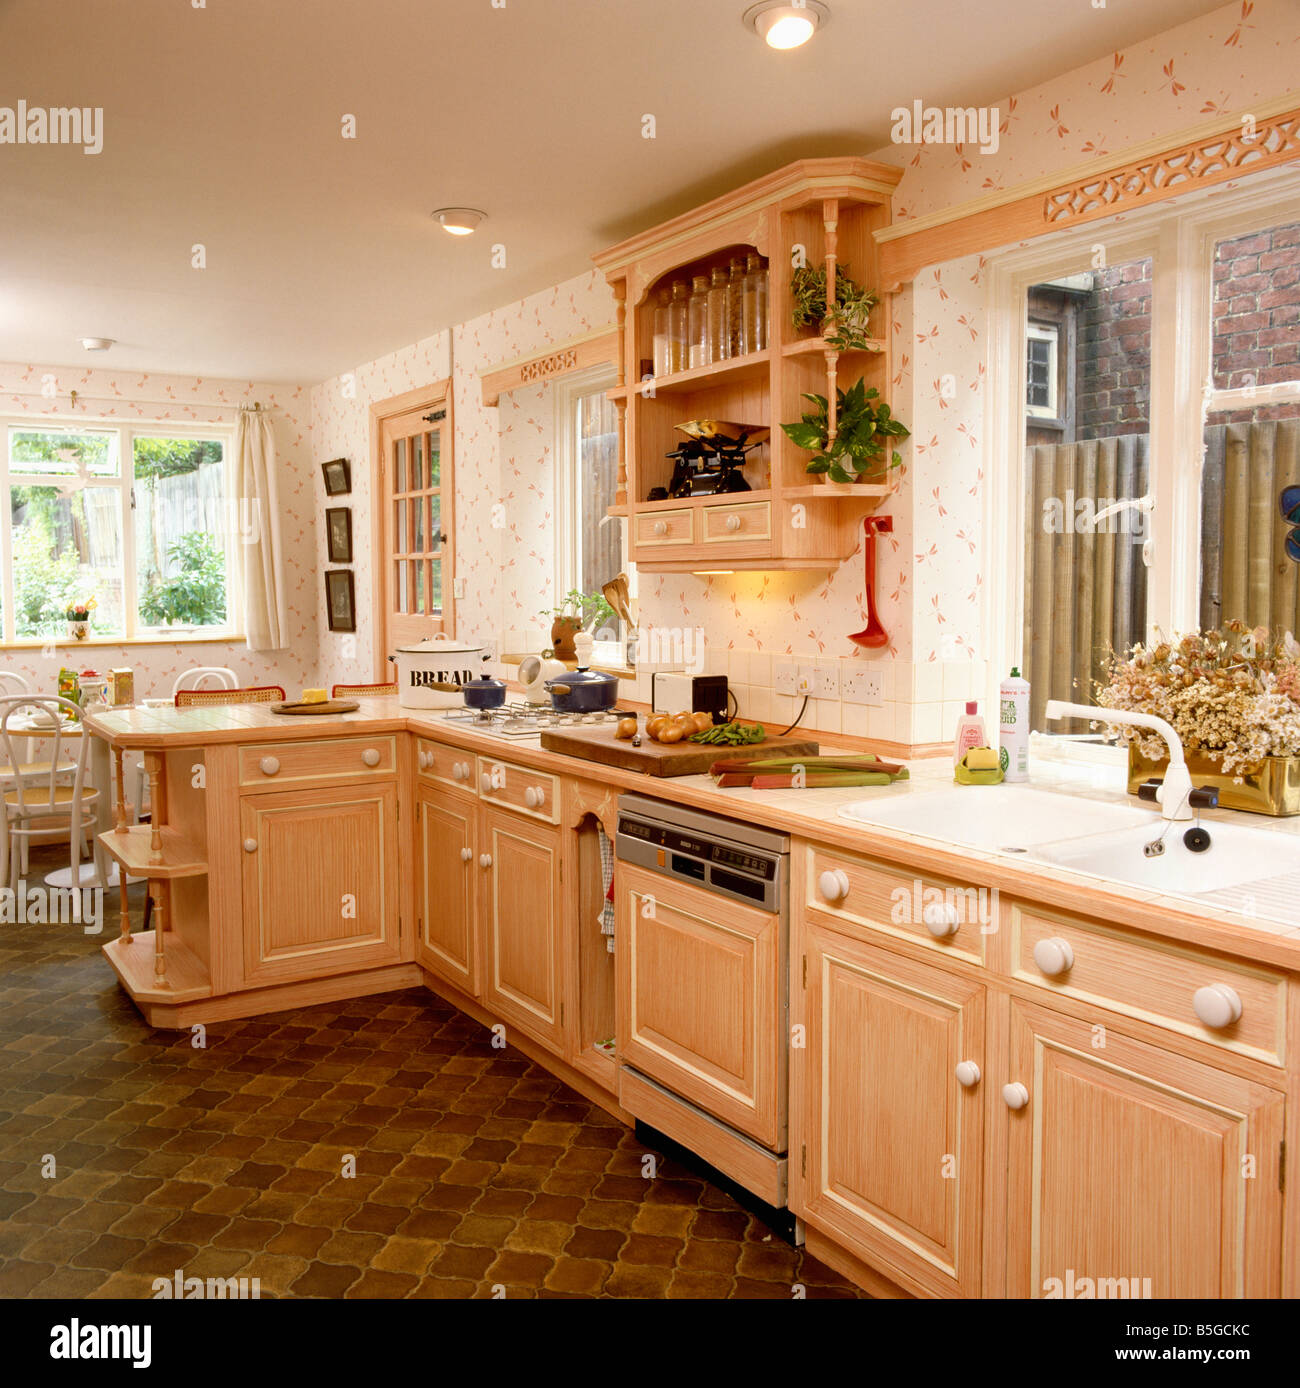 Peach Dragged Paint Effect Cupboards In Kitchen With Floral